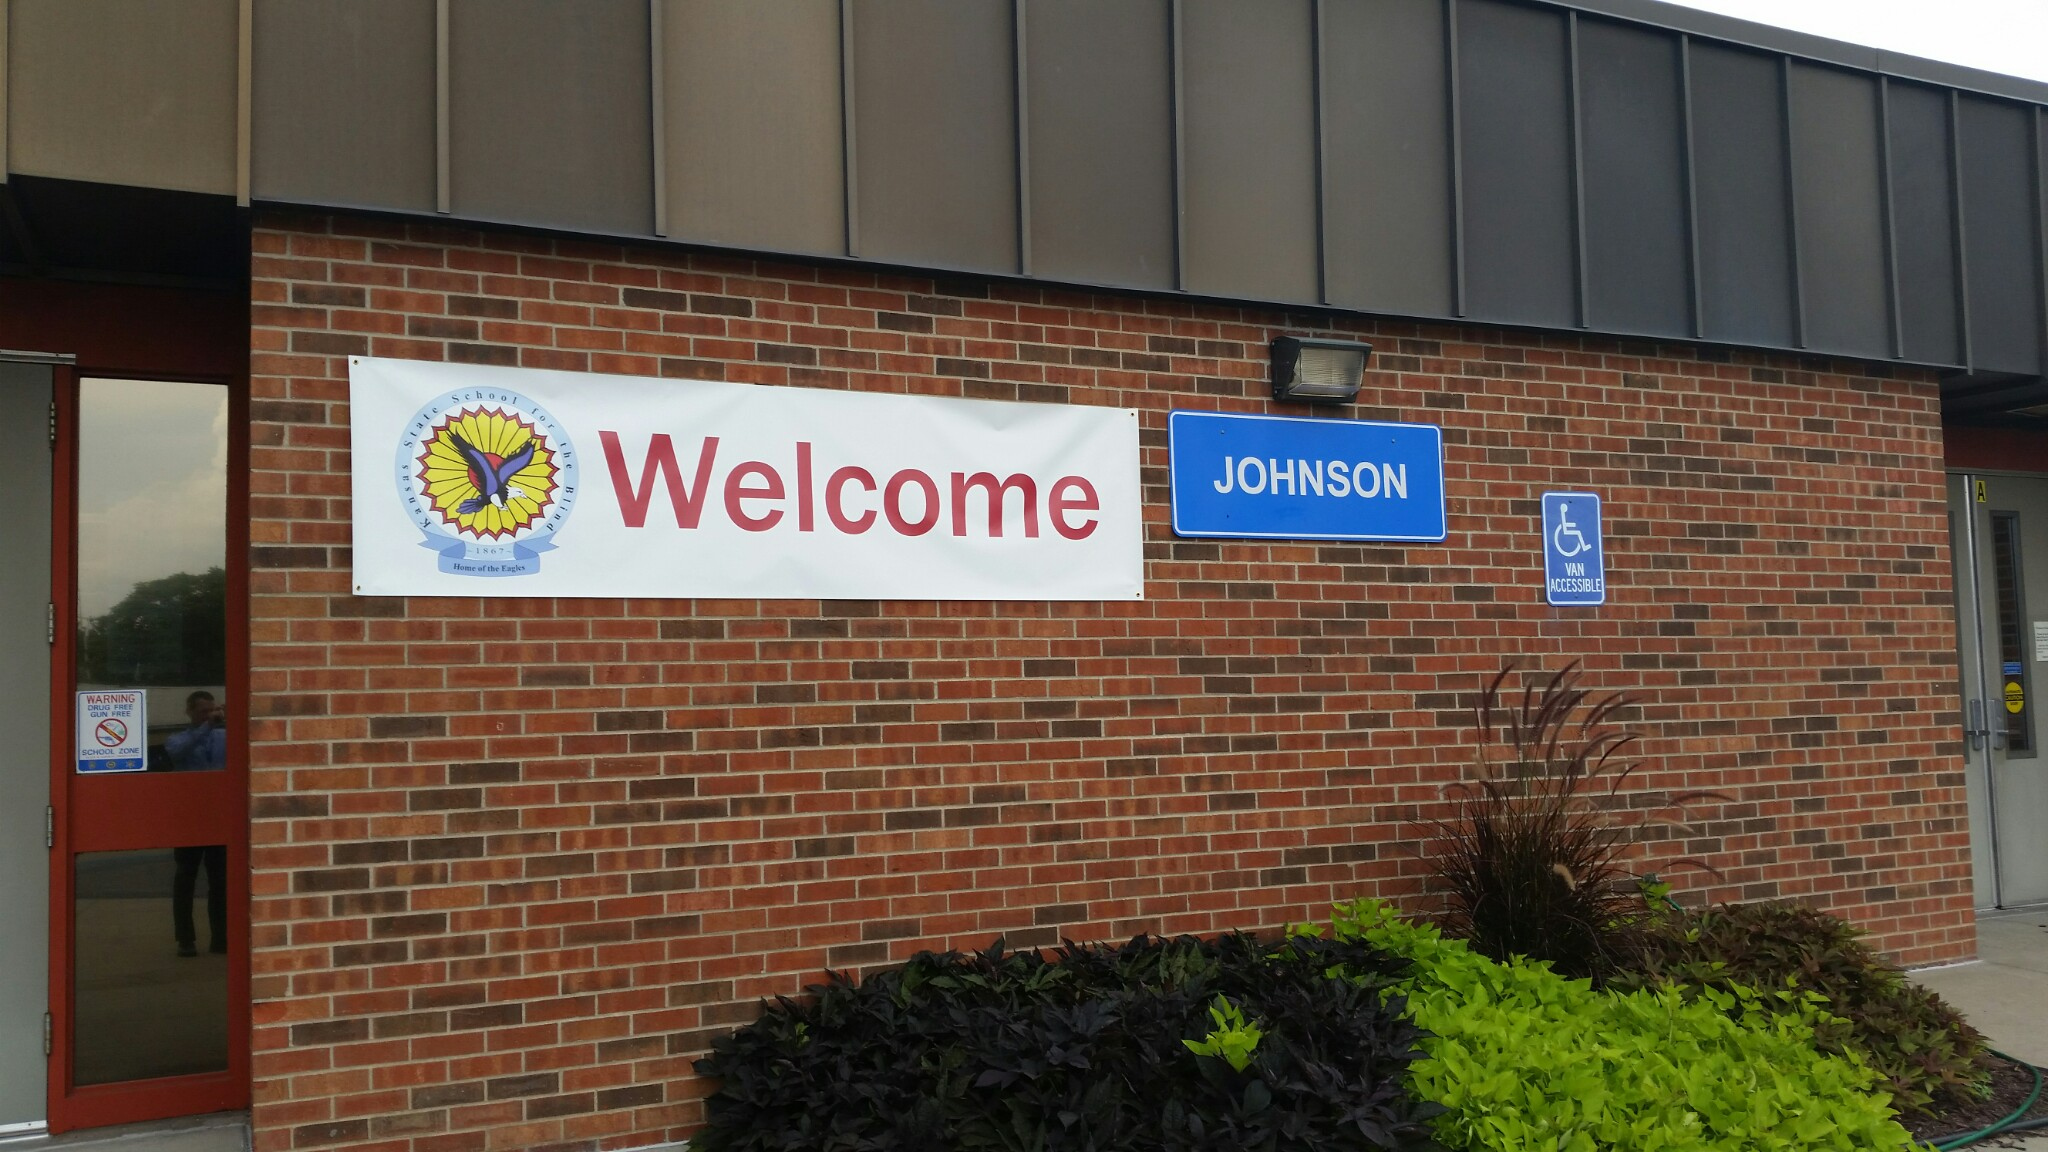 a close up of a red brick building with a printed white banner that says Welcome and the KSSB logo. A blue plastic large name plate that says Johnson.